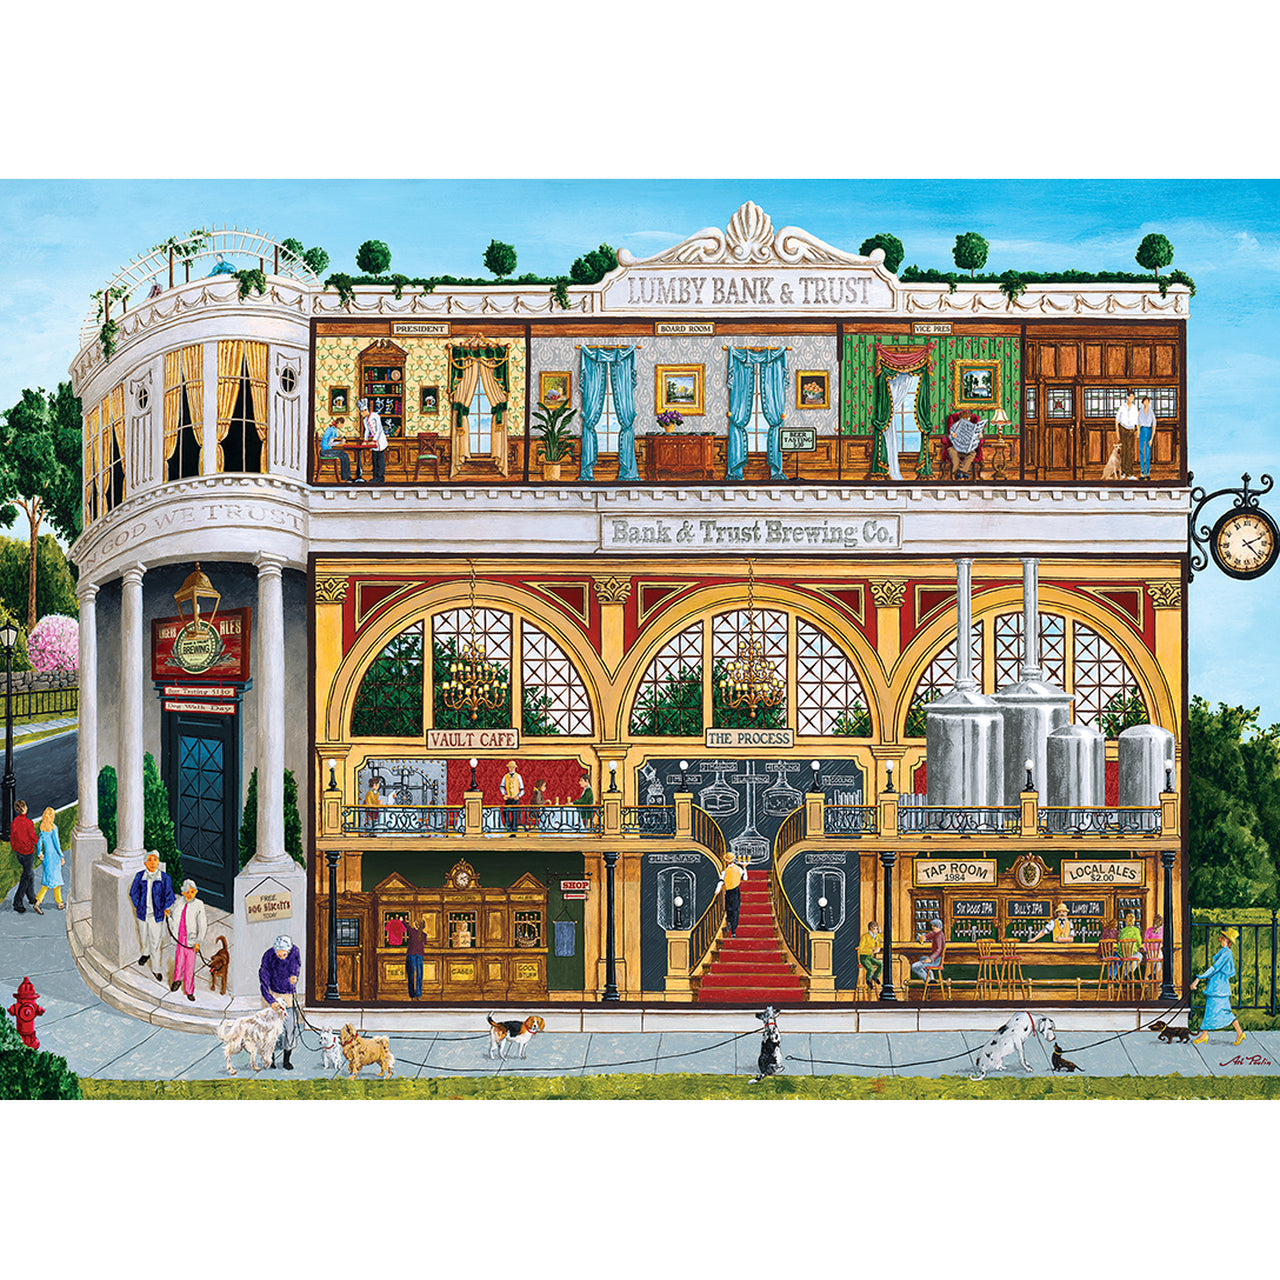 B&T Brewing Company 1000pc Puzzle